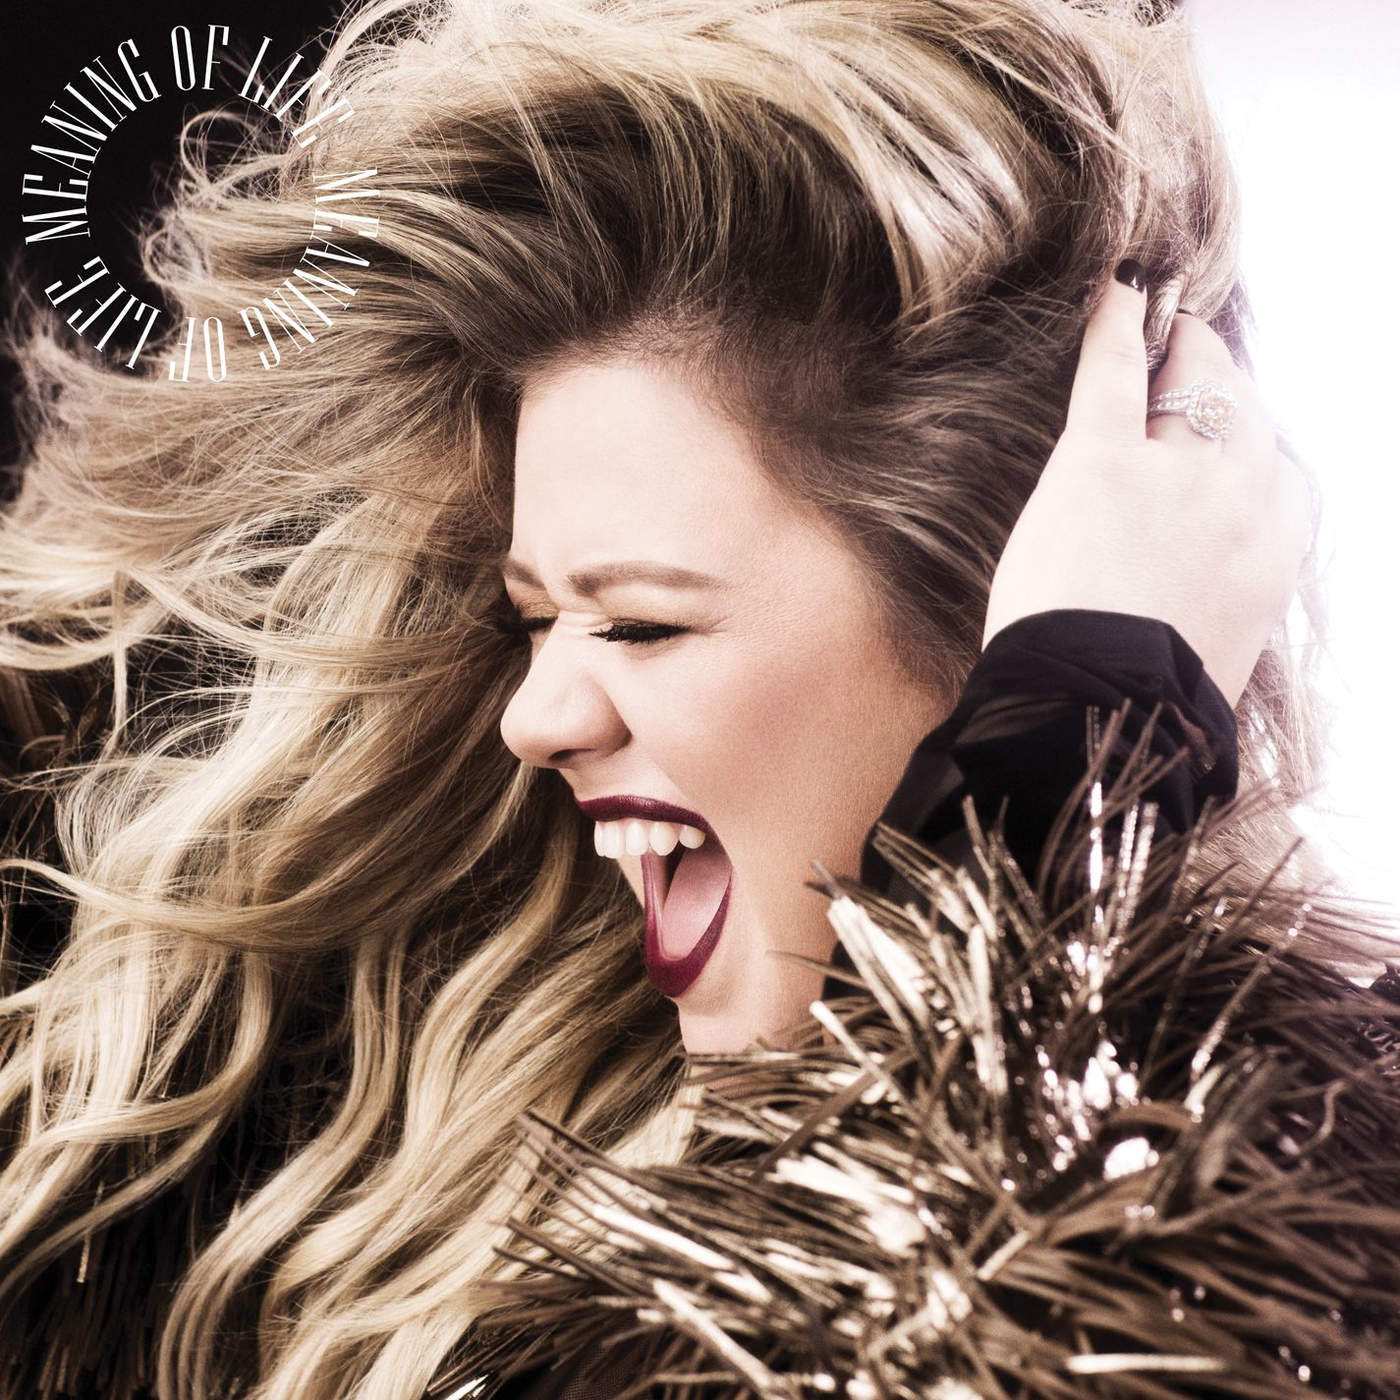 Kelly Clarkson - Meaning of Life - Single